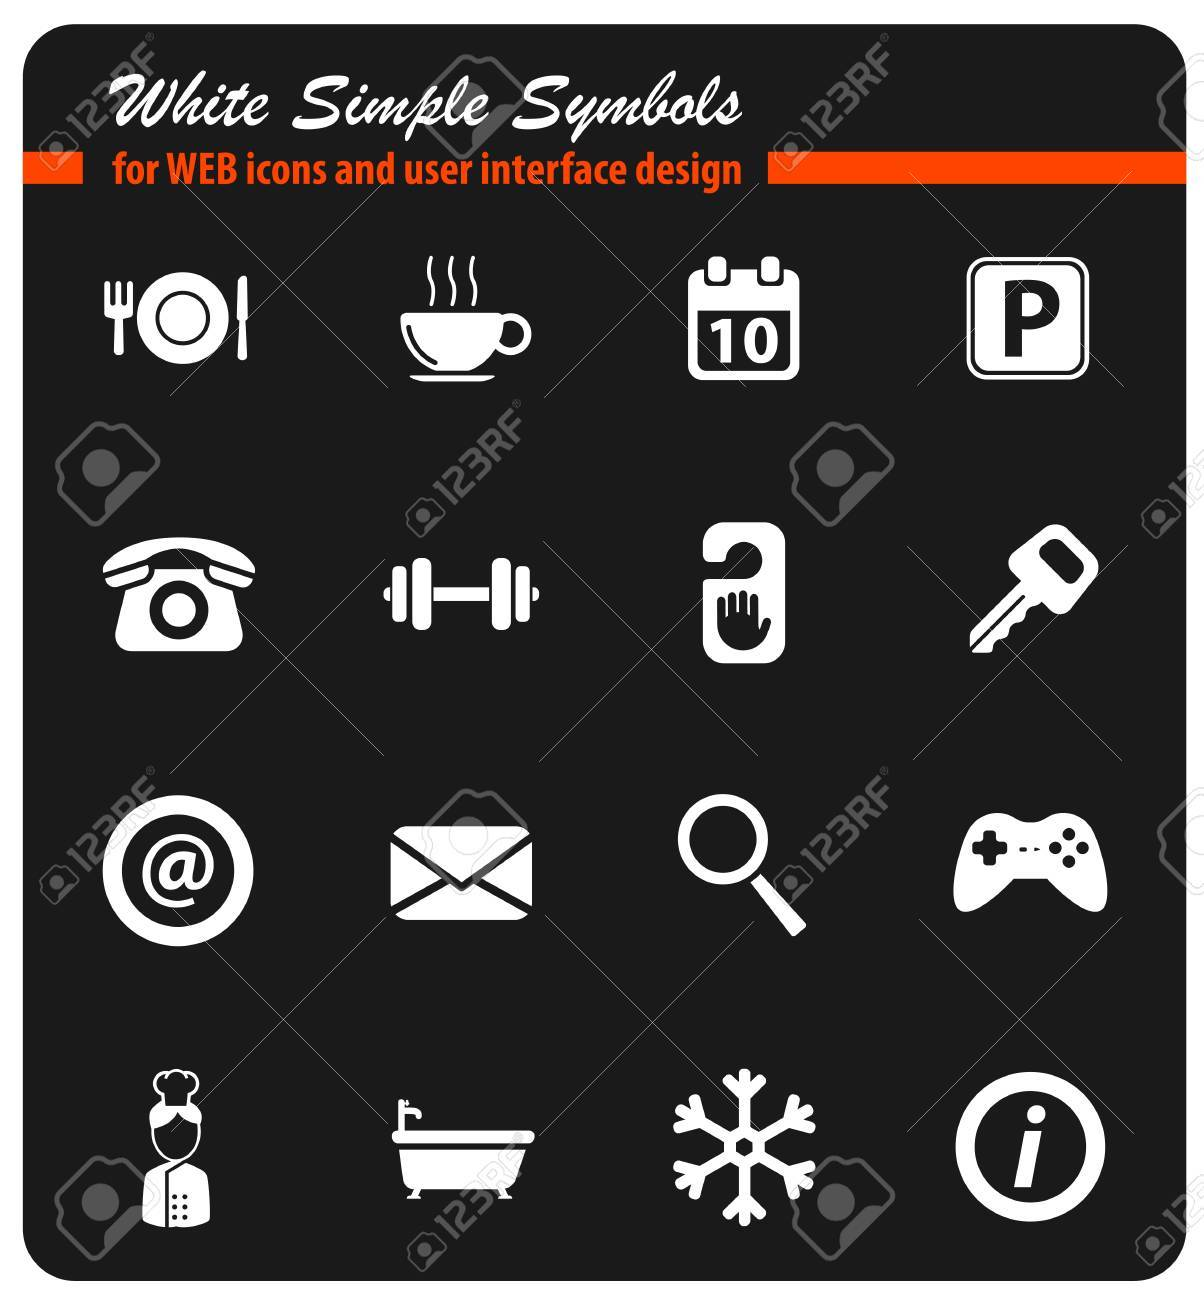 A Hotel Simply Hotel Simply Icons Royalty Free Cliparts Vectors And Stock